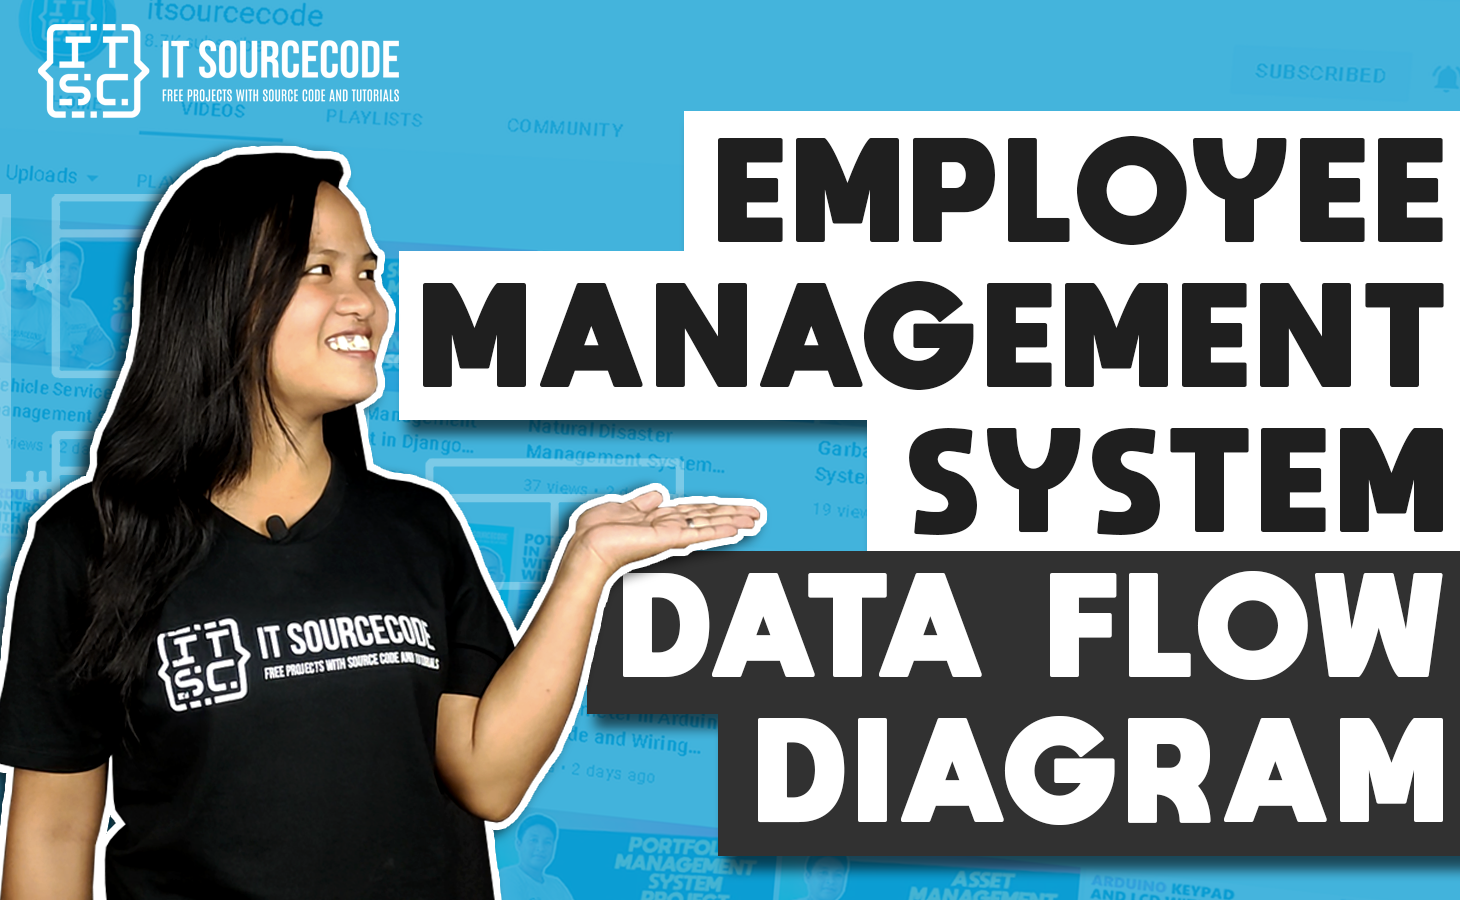 Employee Management System DFD